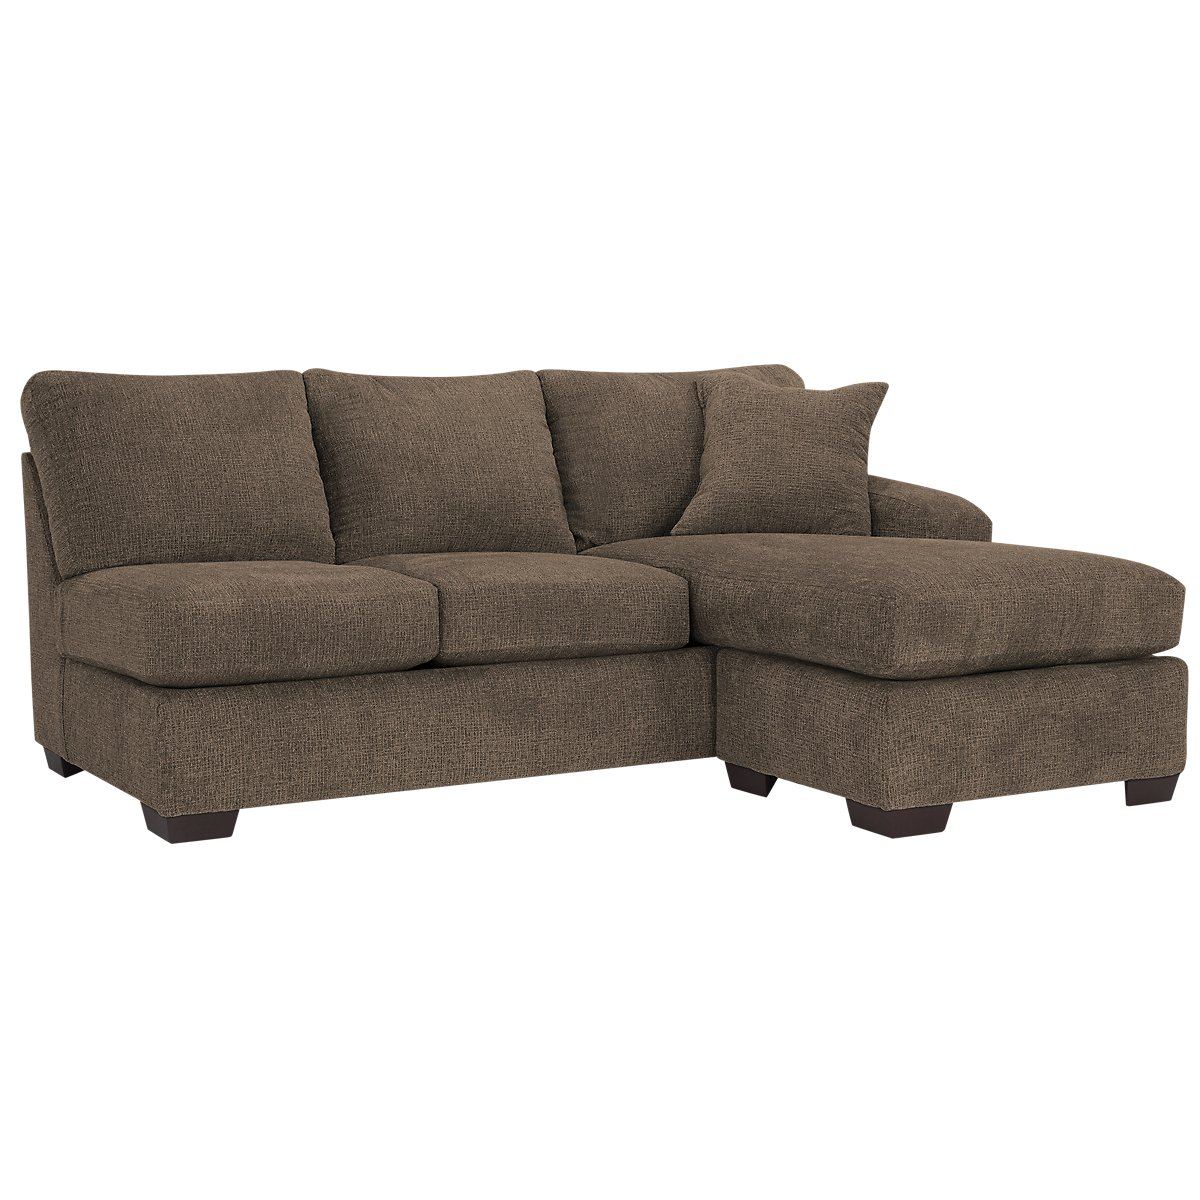 City furniture adam dark brown microfiber right chaise for Brown sectionals with chaise